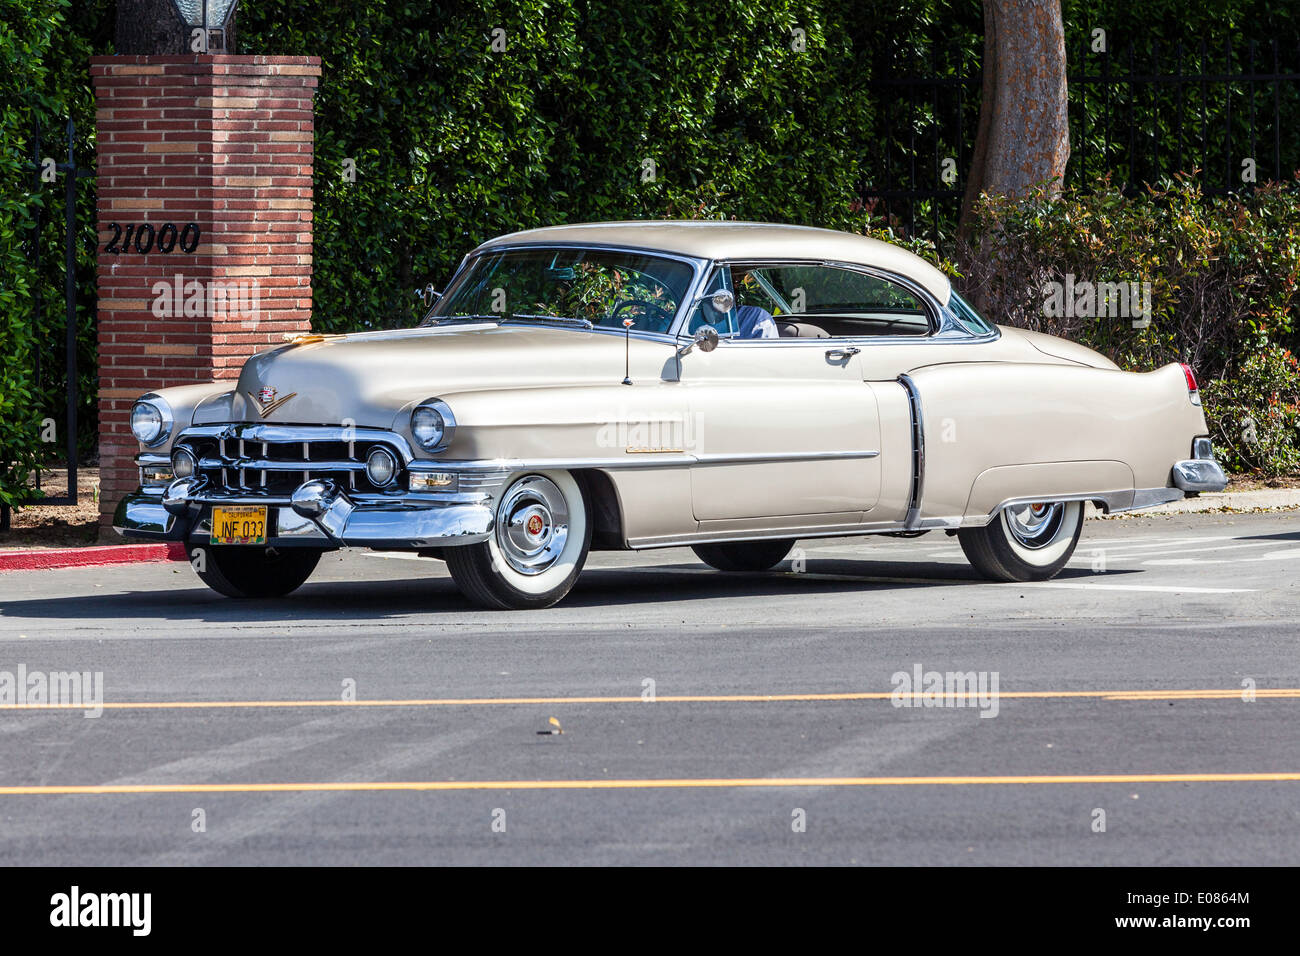 A 1953 Cadillac 2 door Coupe - Stock Image